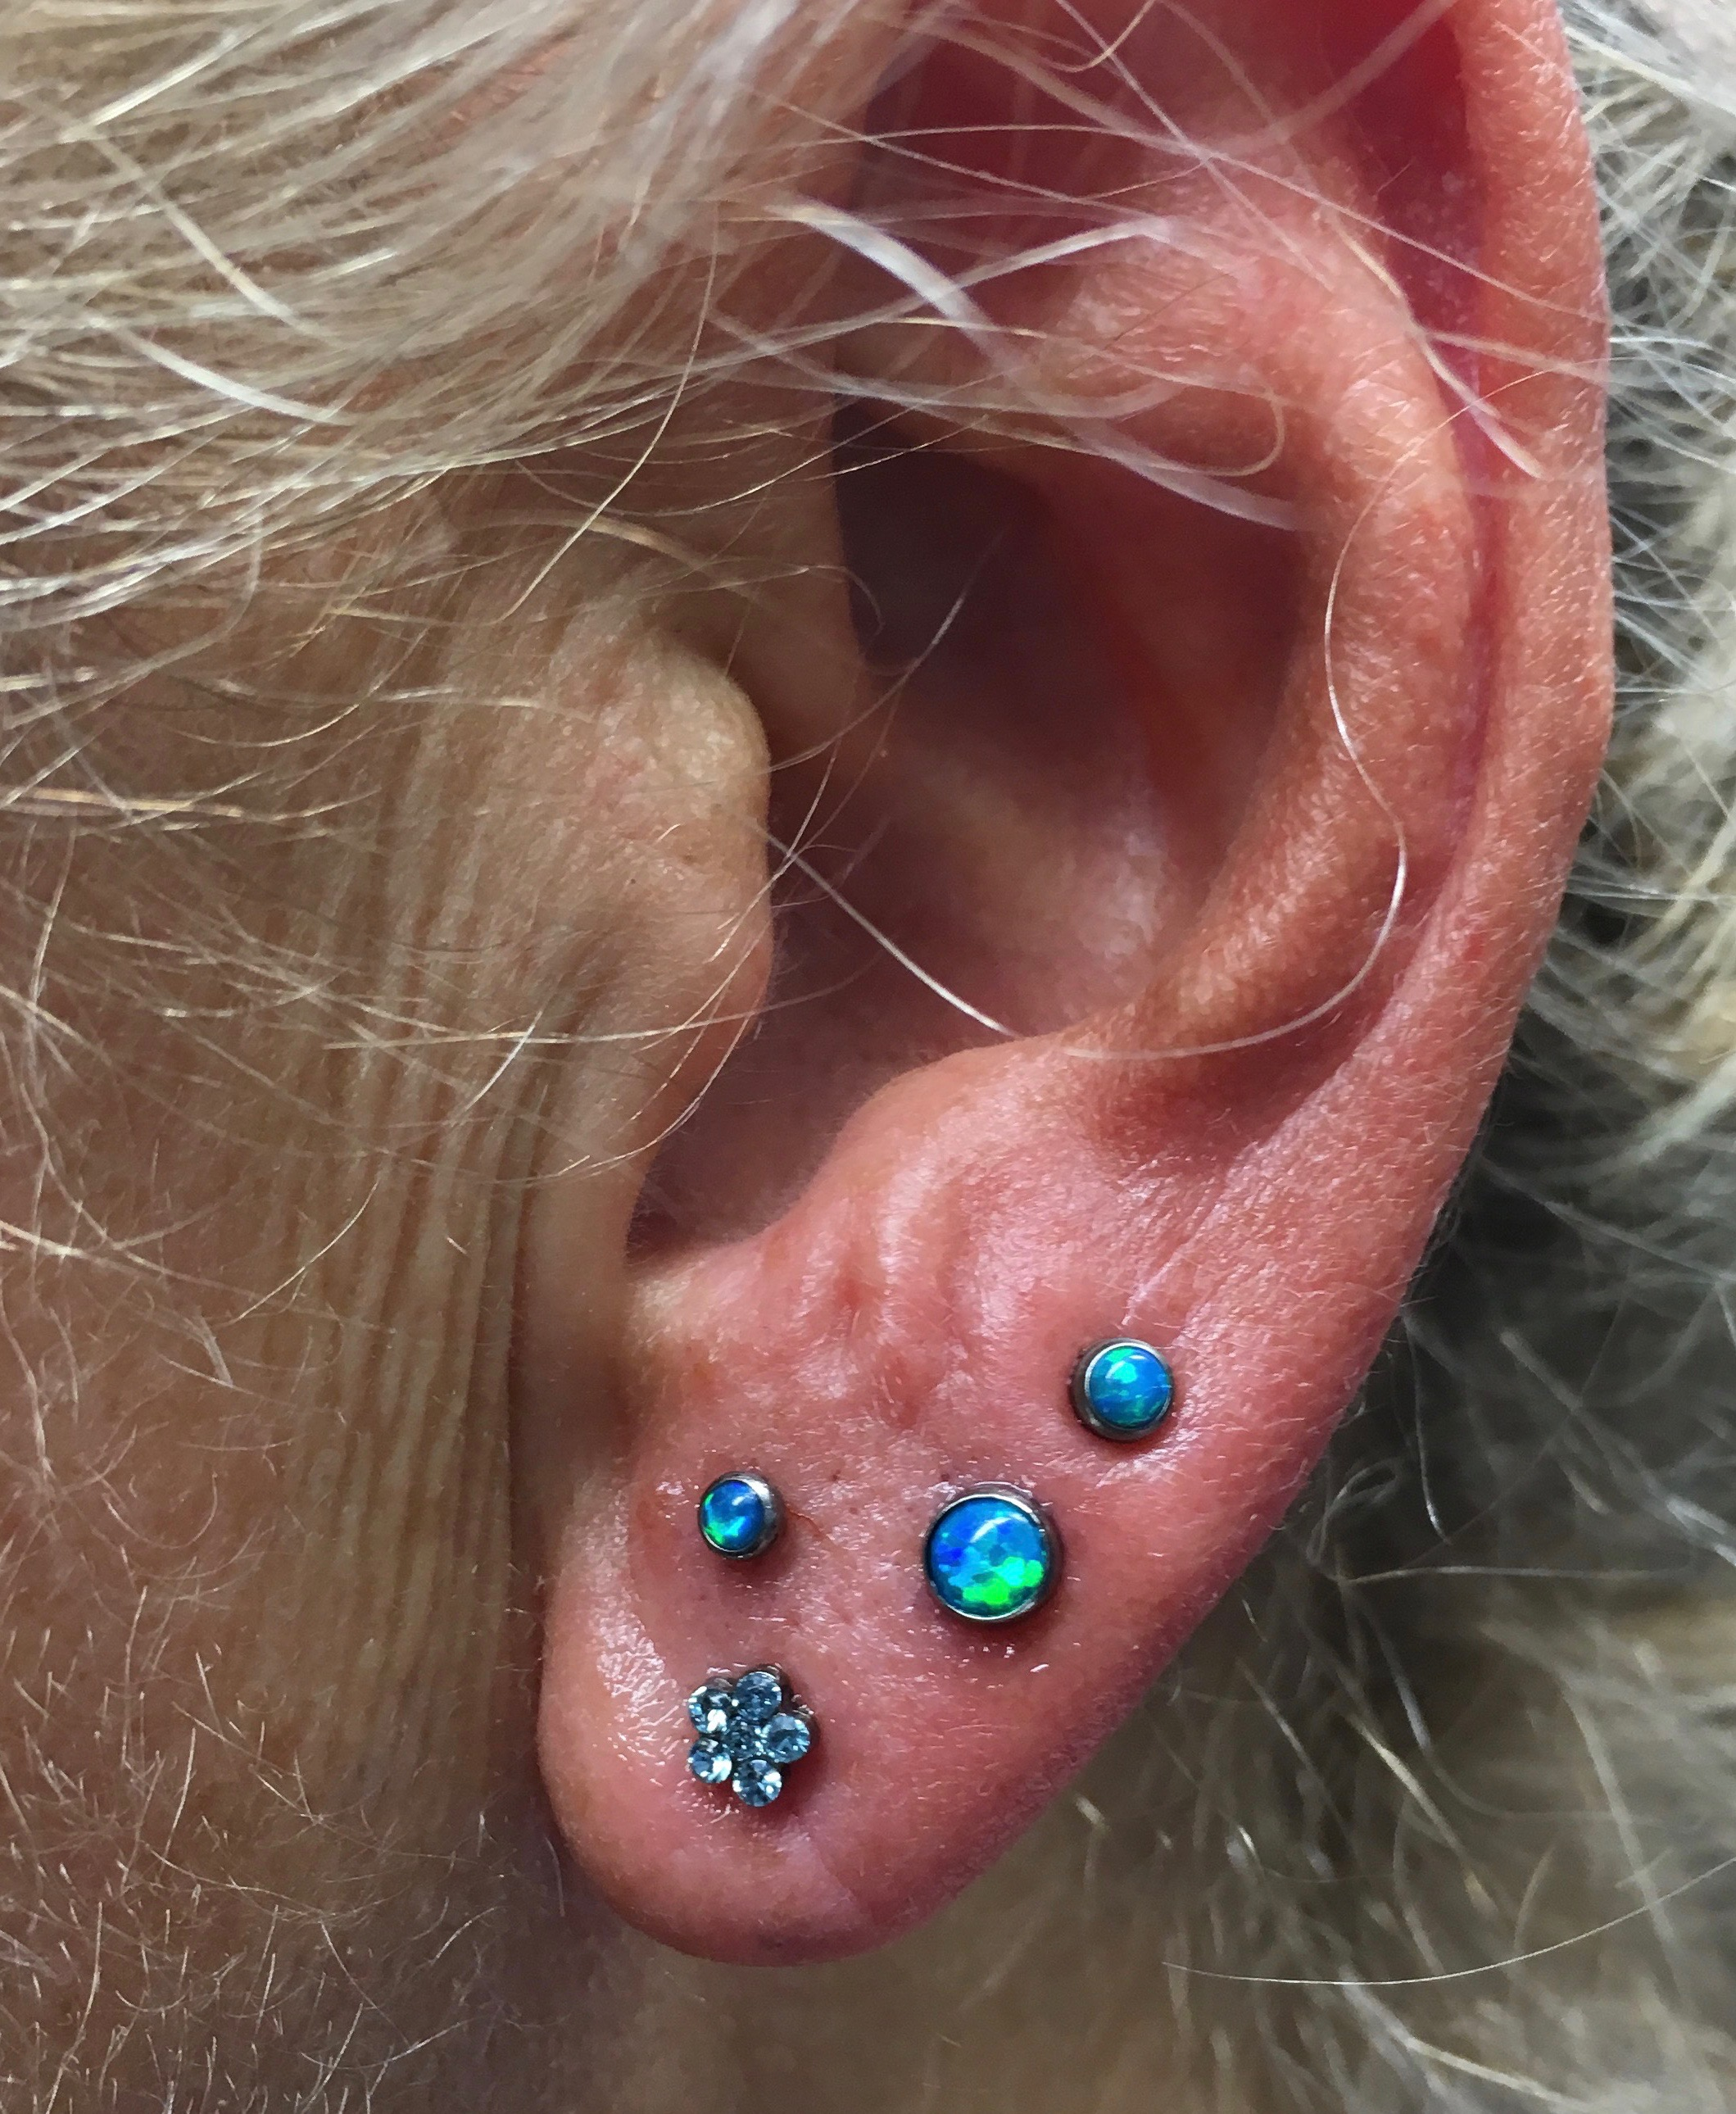 stacked lobes with opals from neometal__